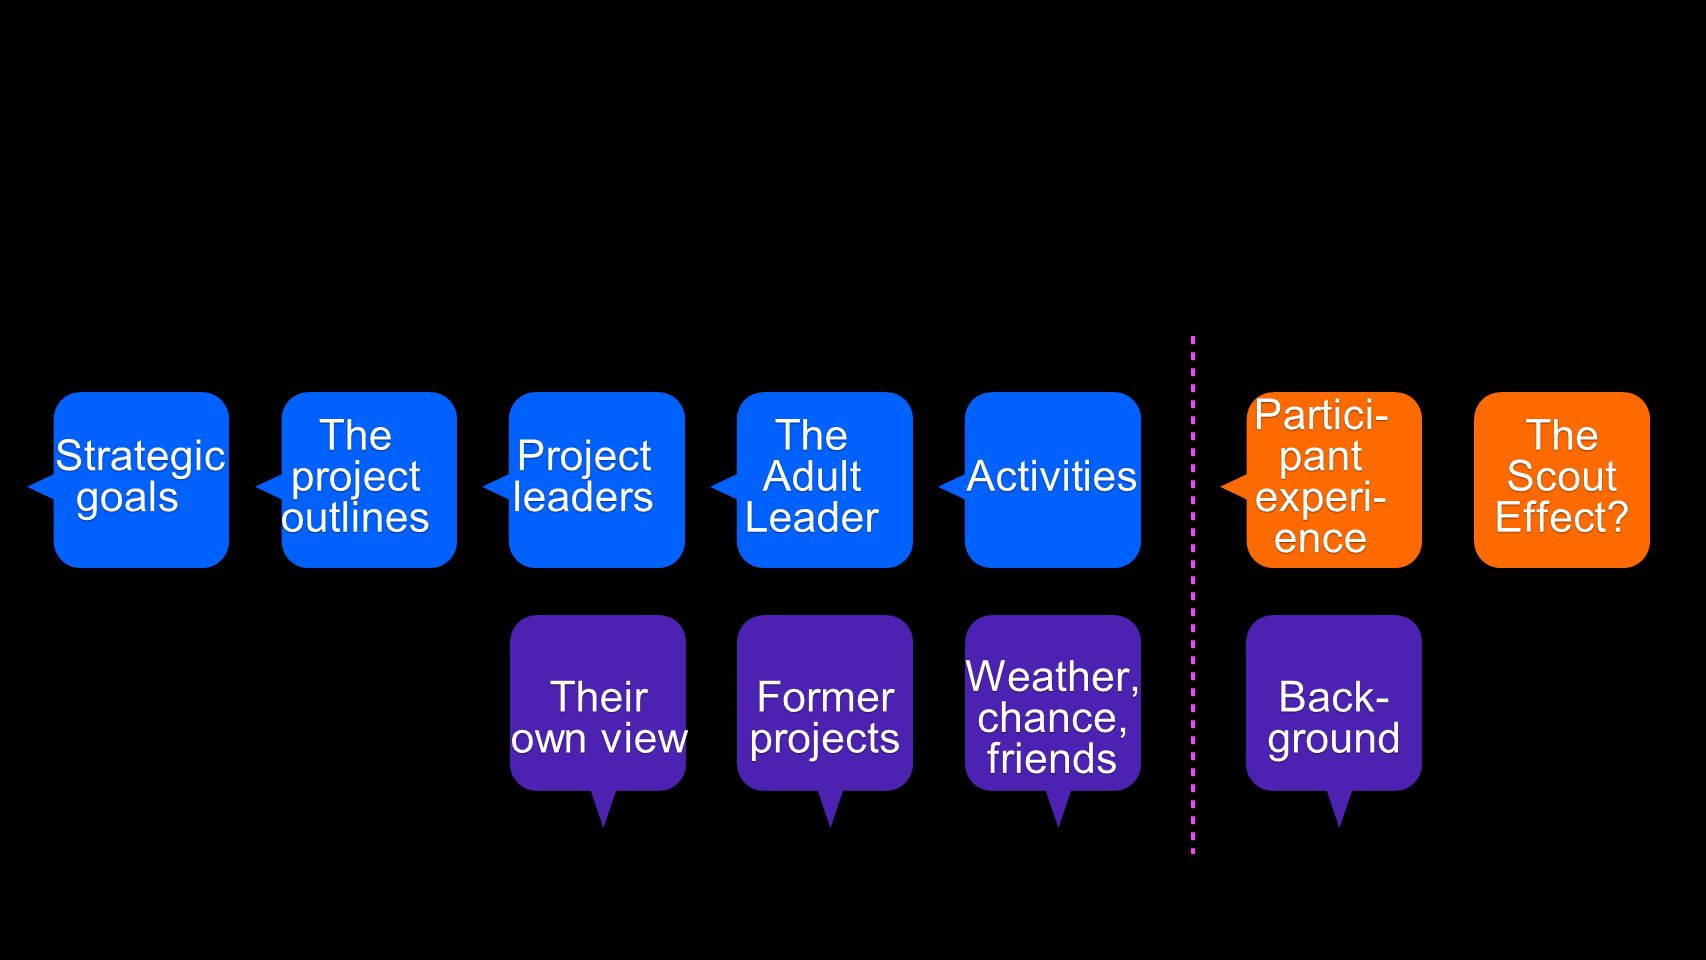 Partici- pant experi- ence The Adult Leader Projectleaders The project outlines Their own view Strategic goals Strategic goals Activities Activities Former projects Back- ground Weather, chance, friends The Scout Effect